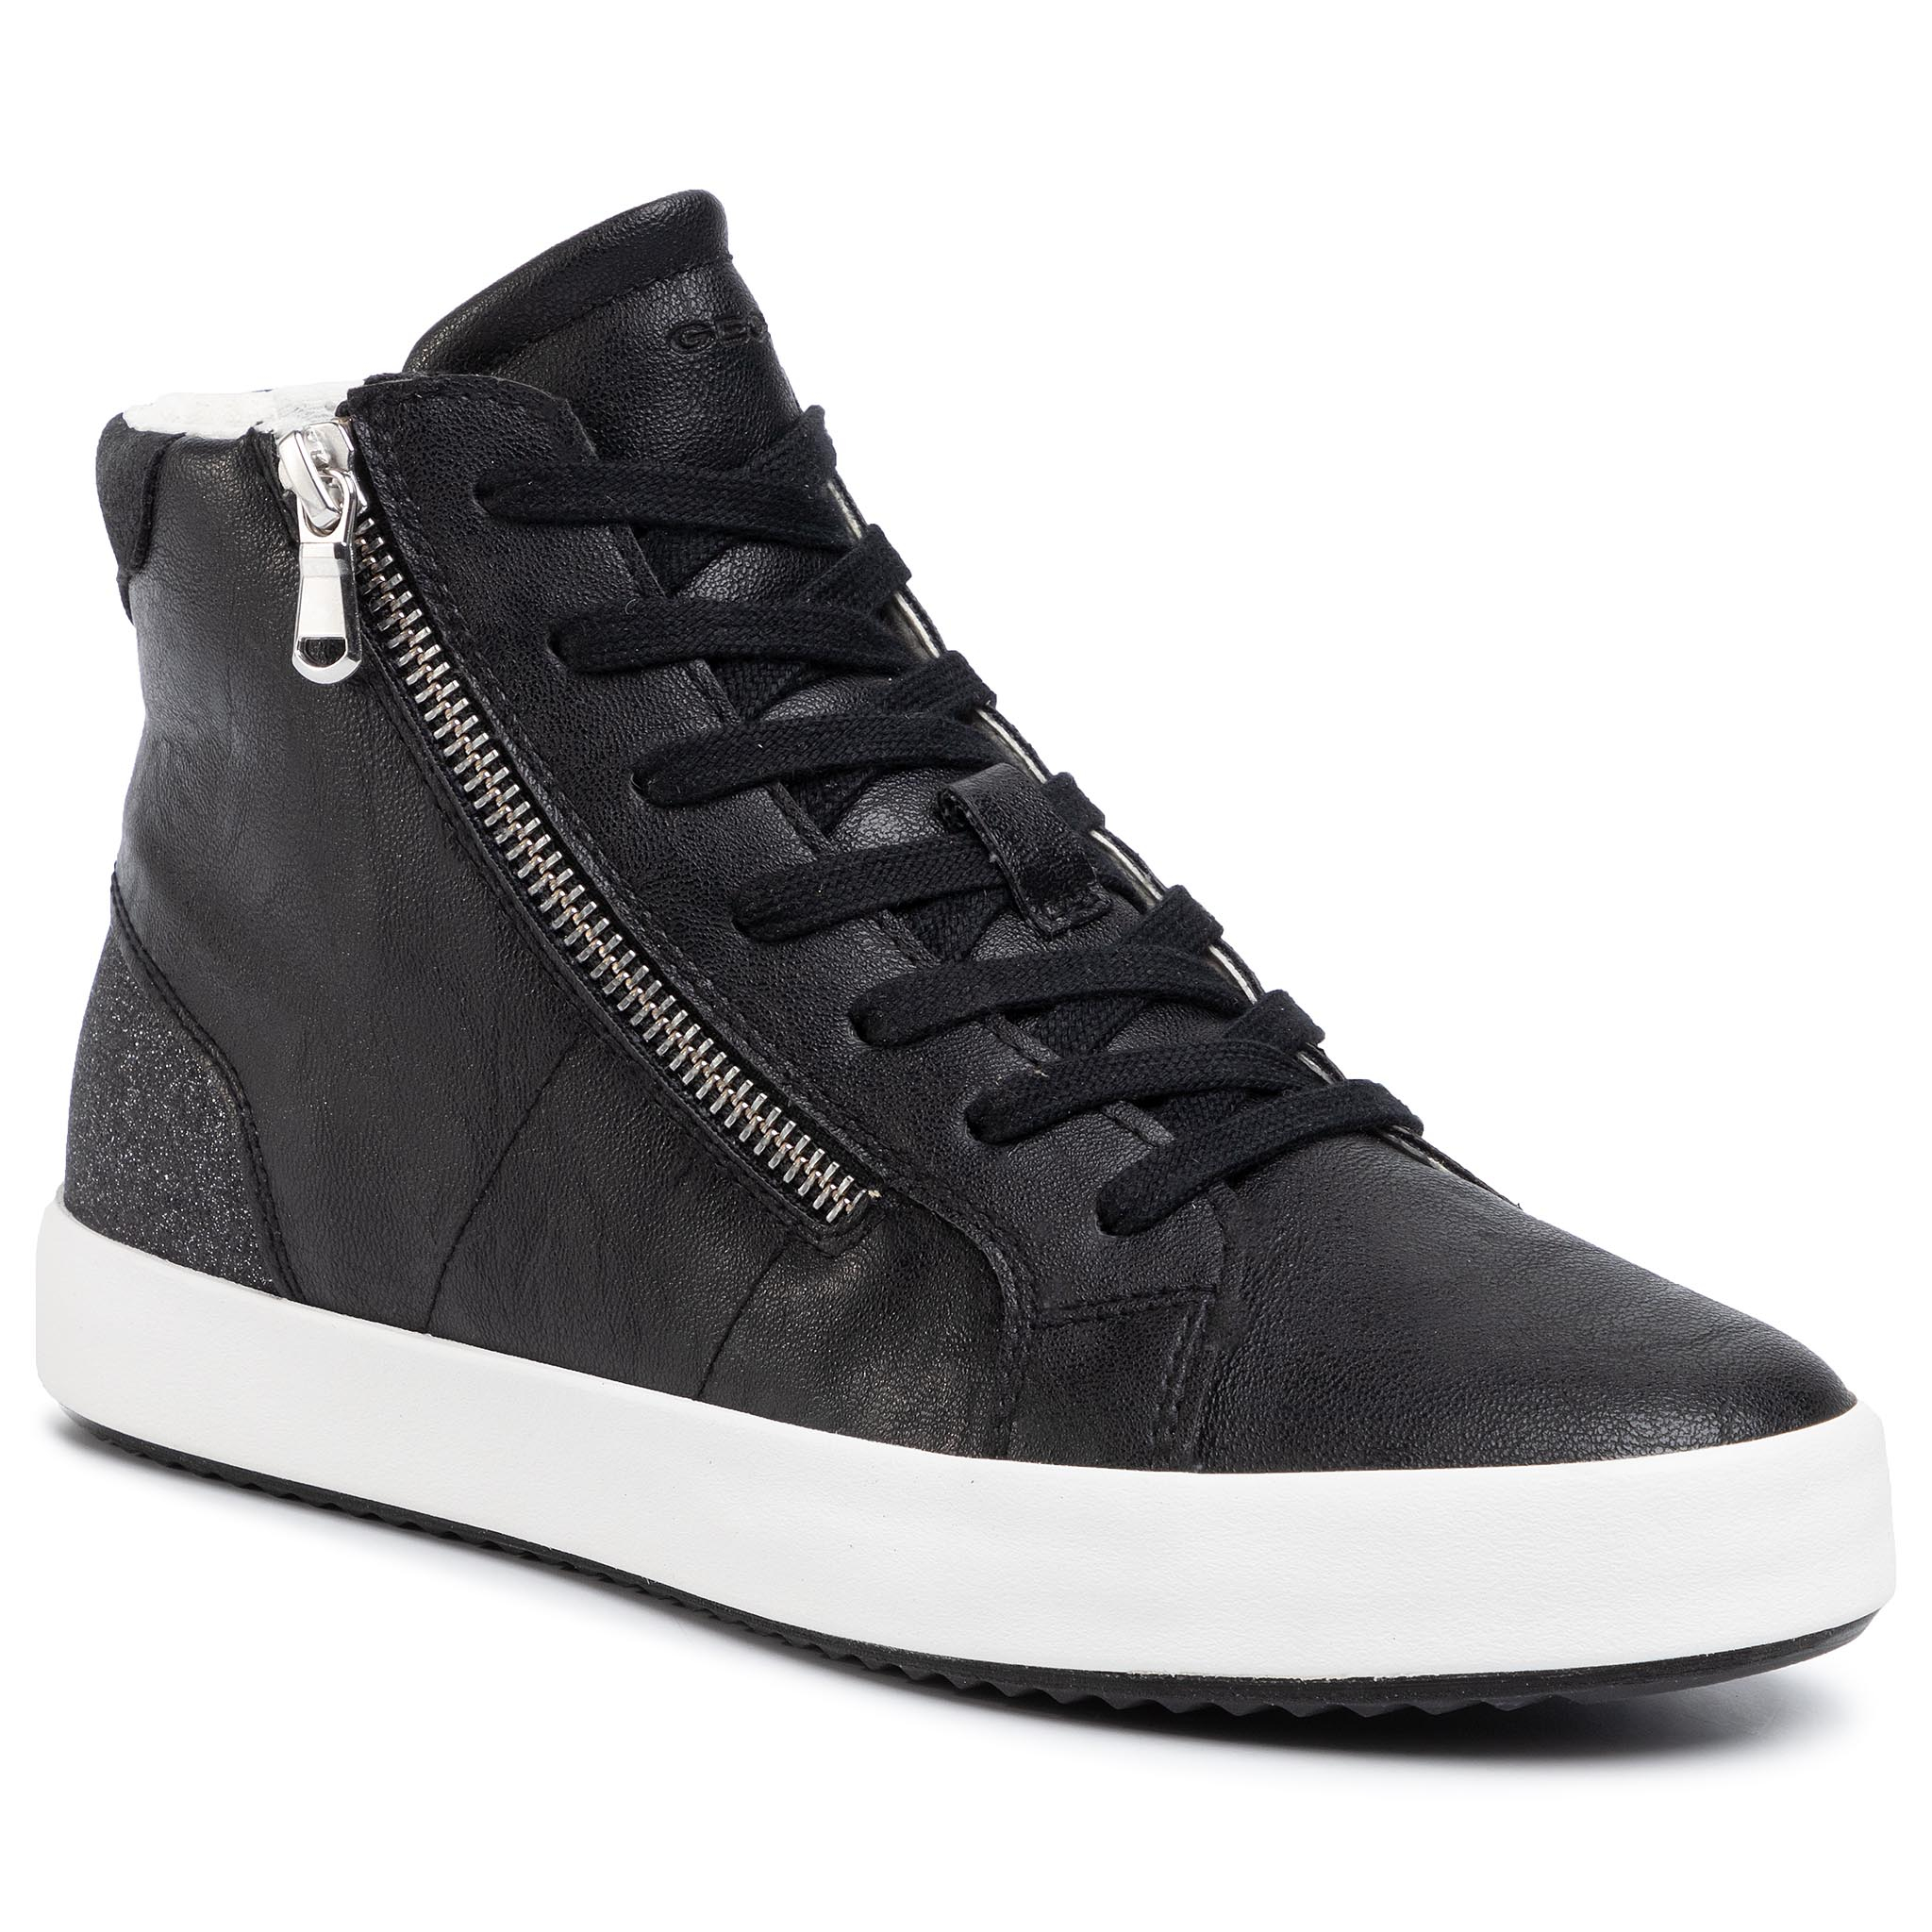 Sneakers GEOX - D Blomiee B D026HB 0PVEW C9270 Black/Anthracite